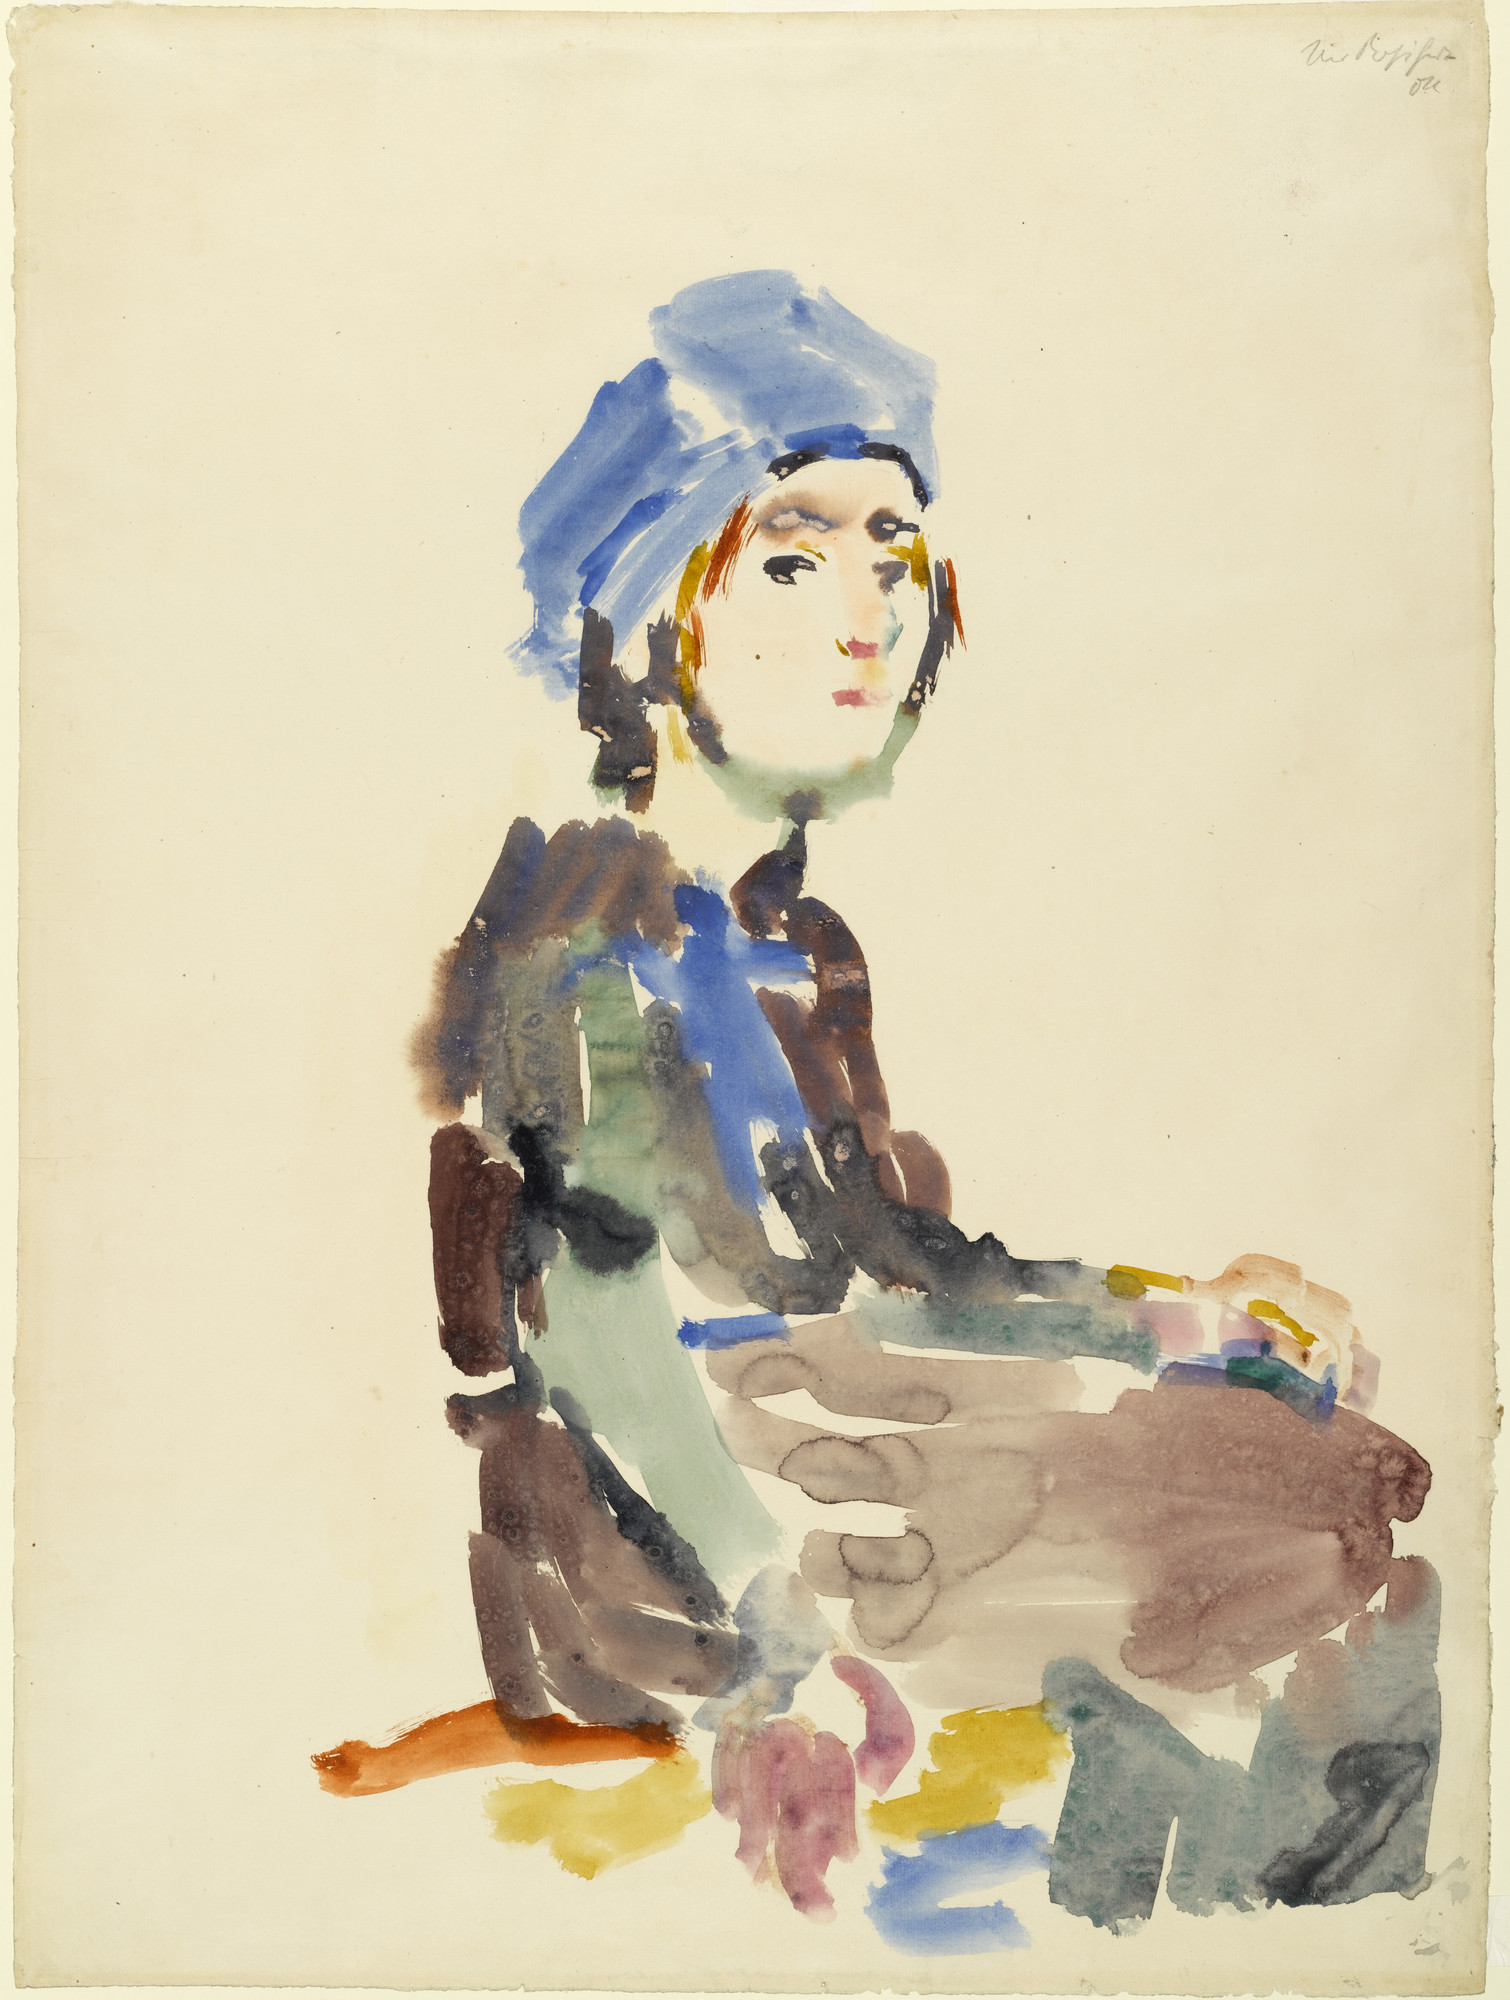 Oskar Kokoschka. Seated Girl. 1922. Watercolor on paper, 27 3⁄8 × 20 3/8″ (69.5 × 51.6 cm). The Joan and Lester Avnet Collection. © 2016 Artists Rights Society (ARS), New York / Pro Litteris, Zurich. Photo: Robert Gerhardt